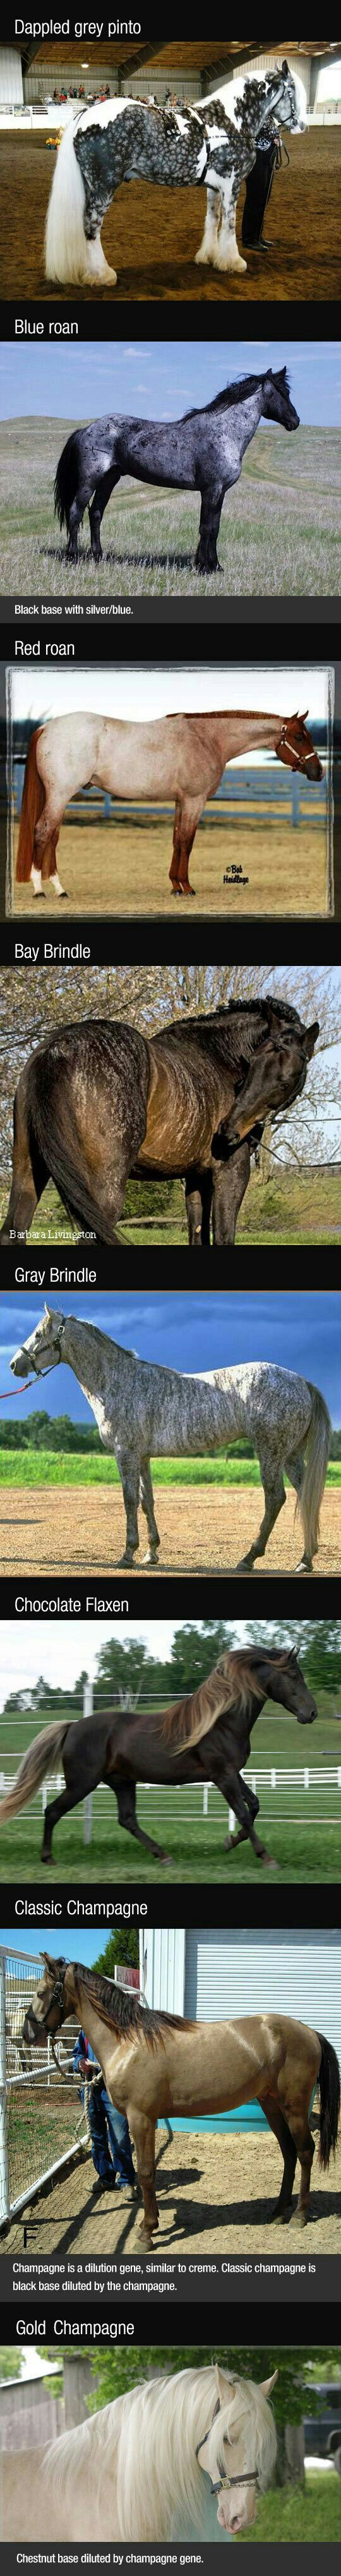 46 best horse color chart images on pinterest color charts horse color chart color charts pretty horses beautiful horses wild horses colors nice appaloosa cavalli nvjuhfo Choice Image